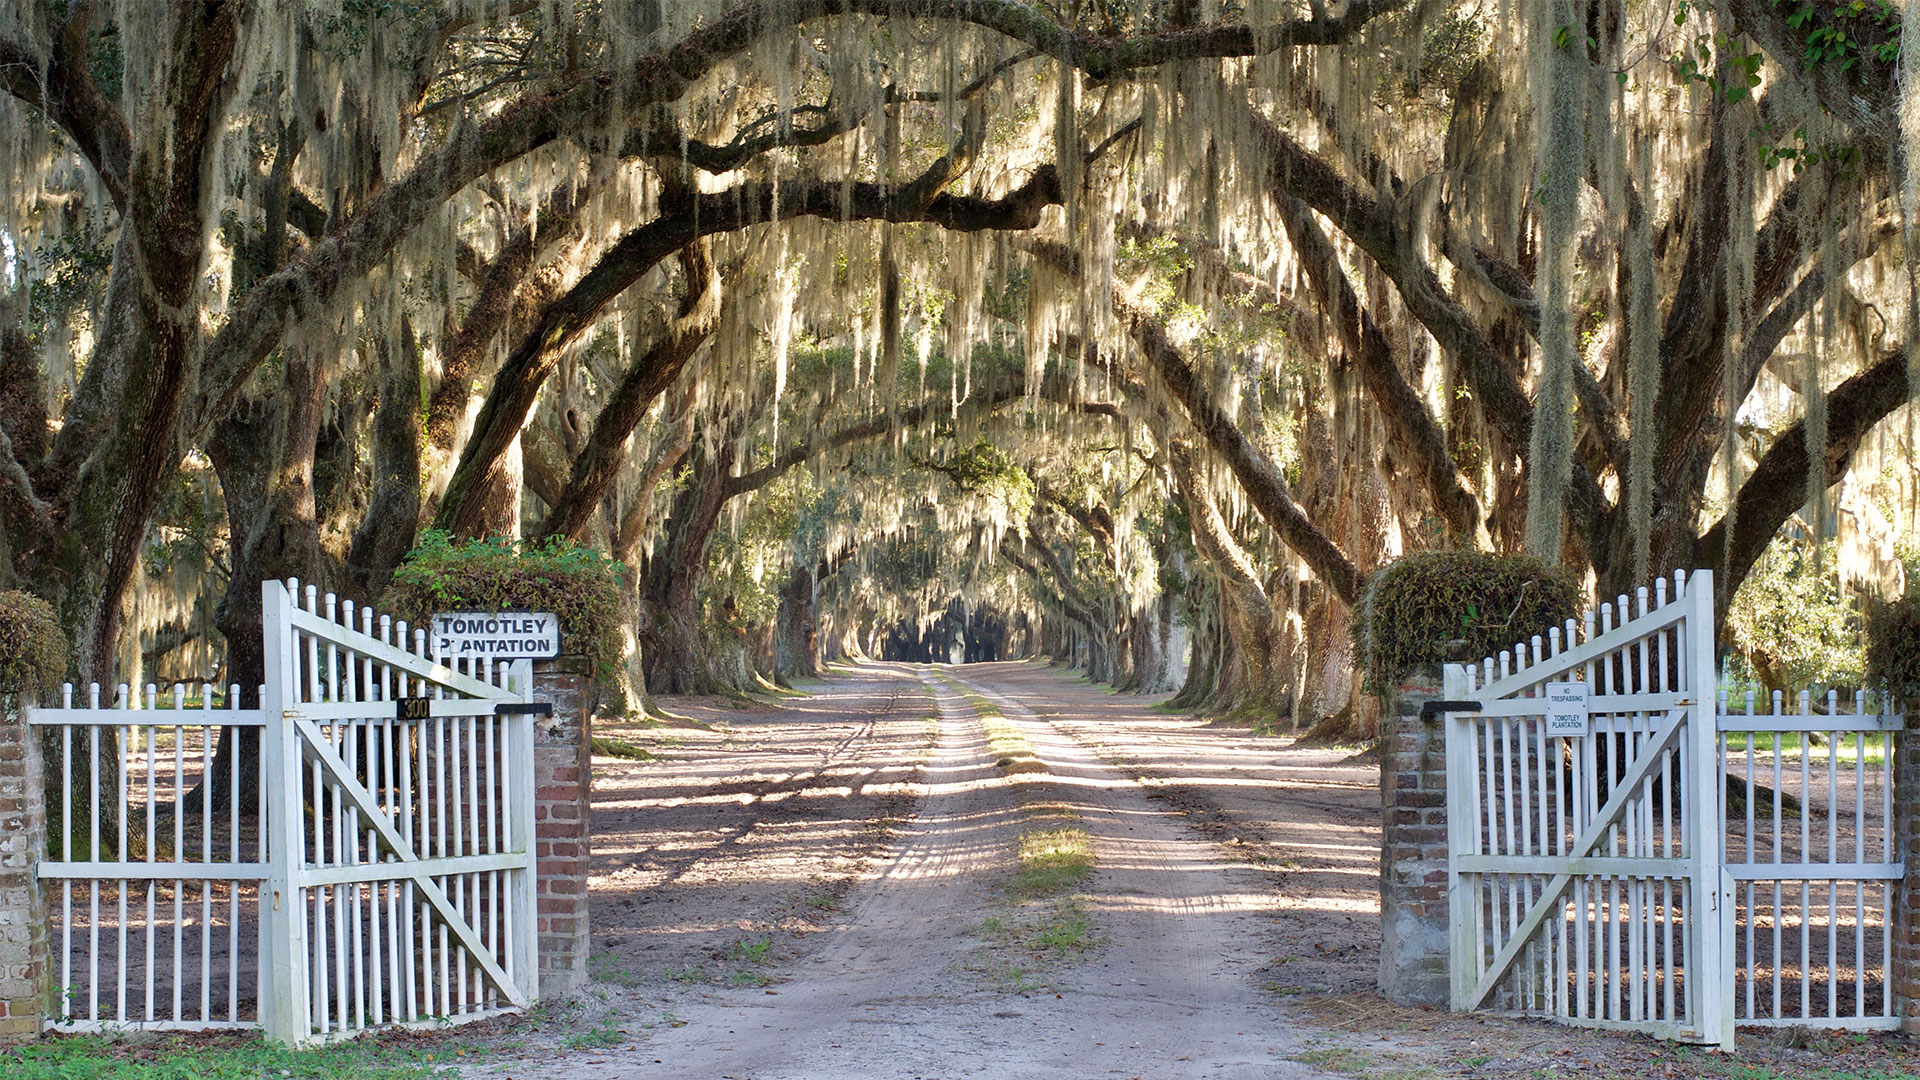 Tomotley Plantation Yemassee SC Gate